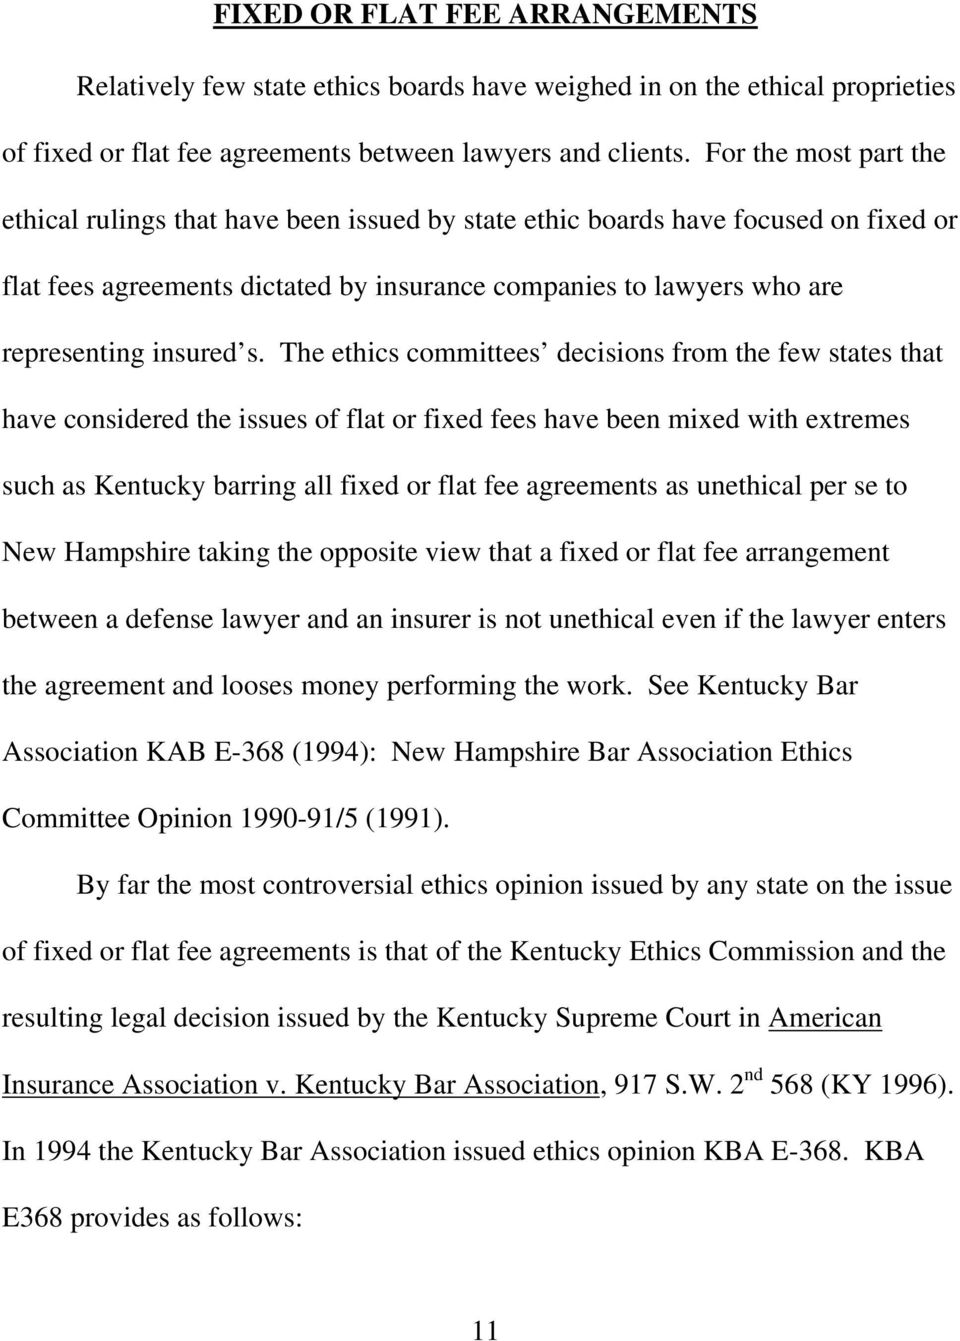 s. The ethics committees decisions from the few states that have considered the issues of flat or fixed fees have been mixed with extremes such as Kentucky barring all fixed or flat fee agreements as